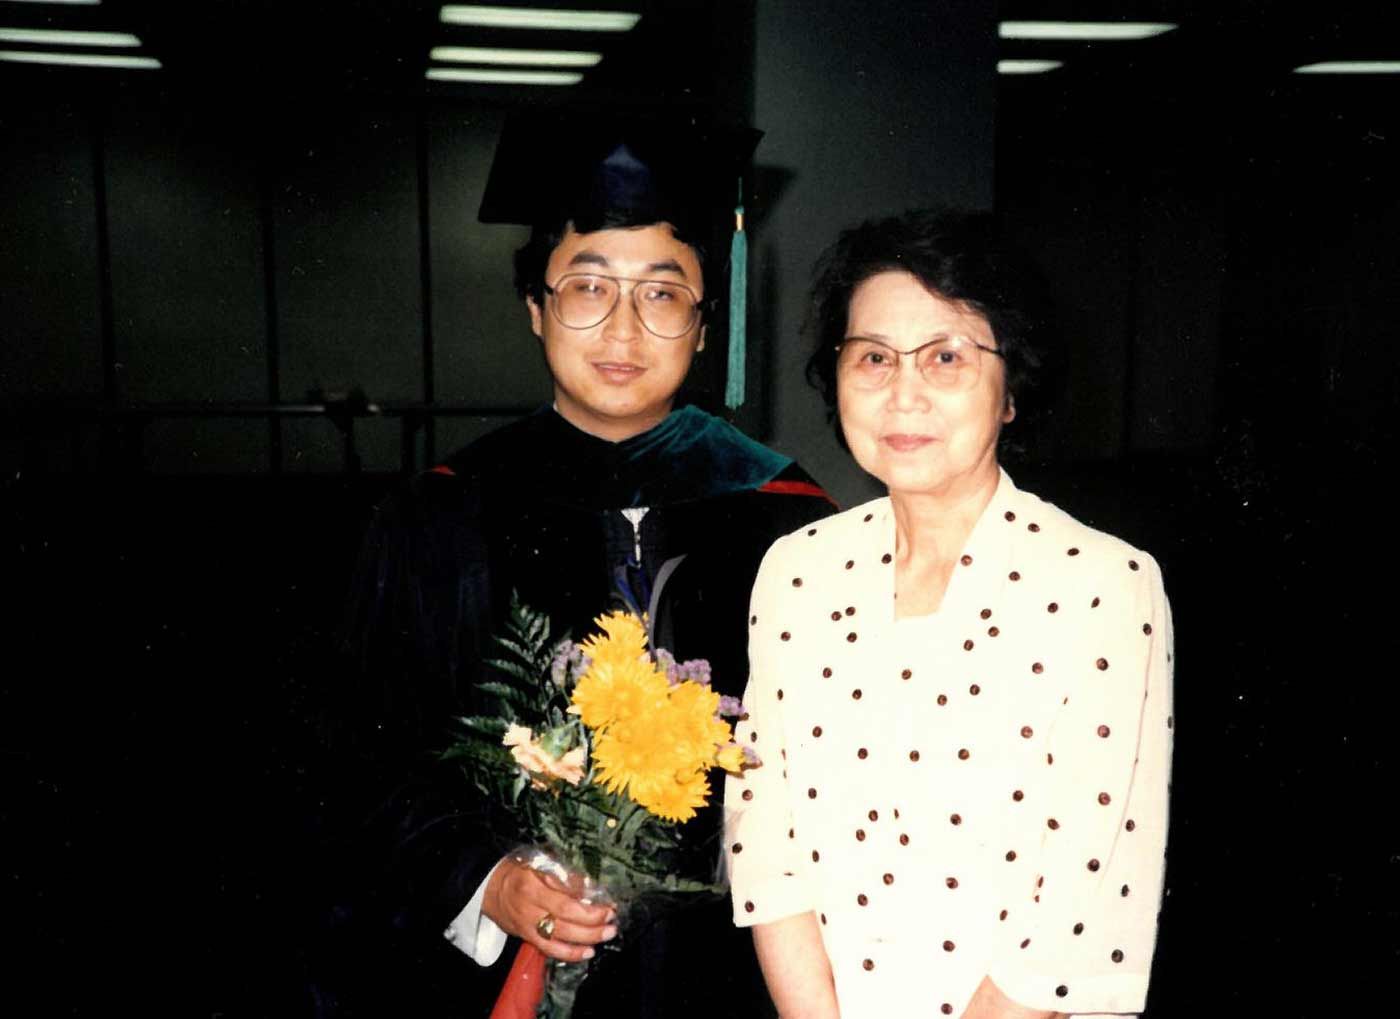 Man in graduation gown with woman in dotted dress